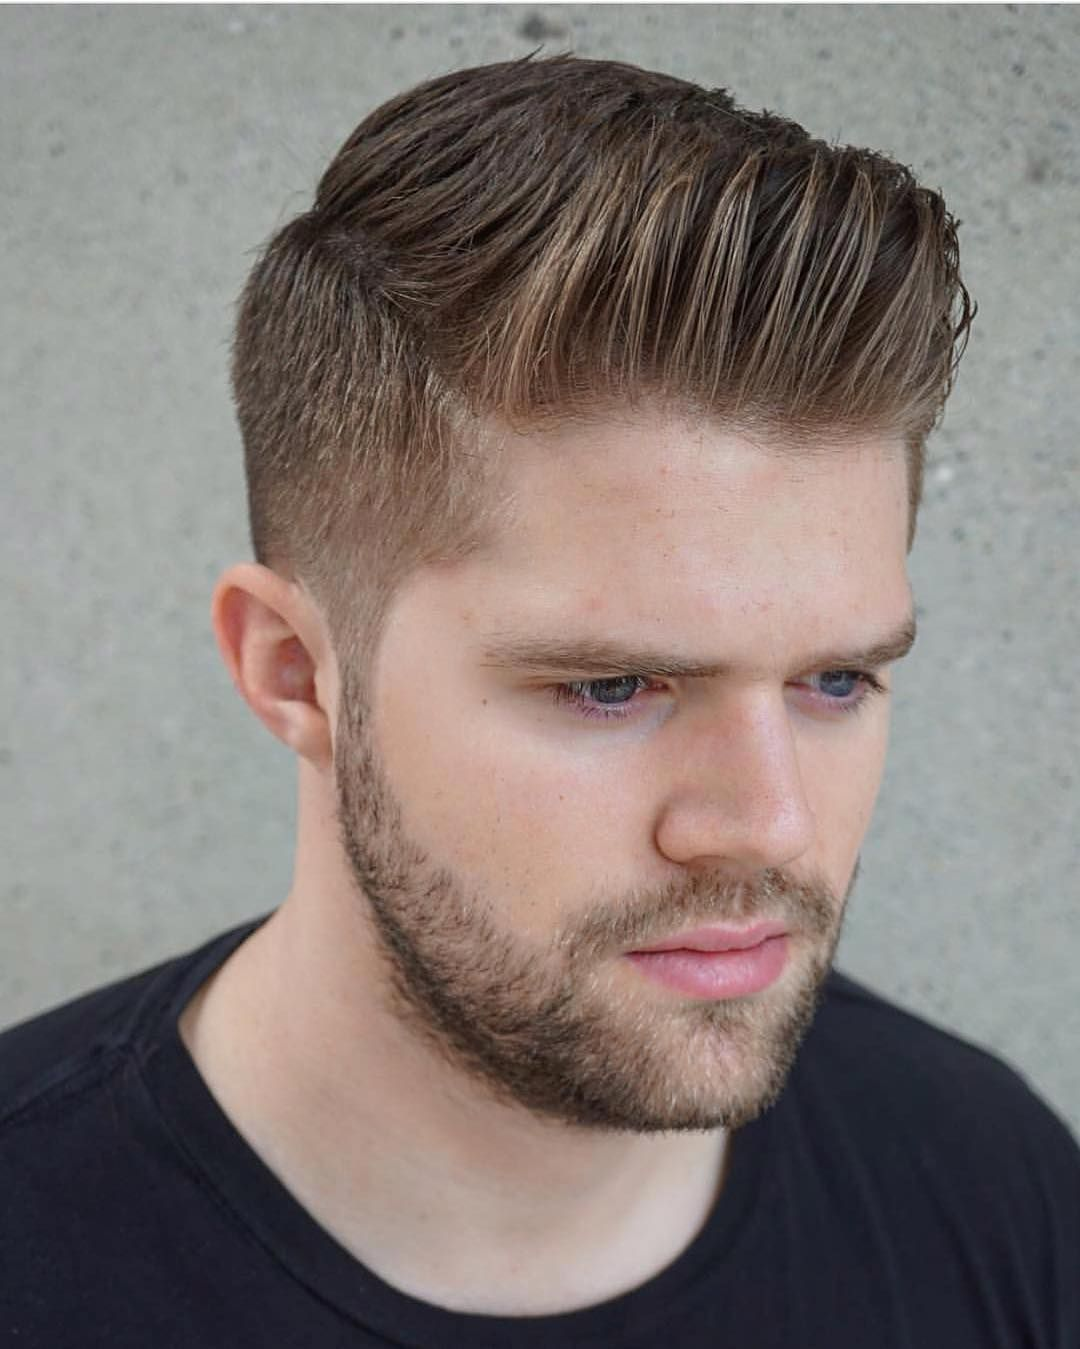 Pin By Caleb Lopez On Hair Gentleman Haircut Mens Hairstyles Dapper Haircut